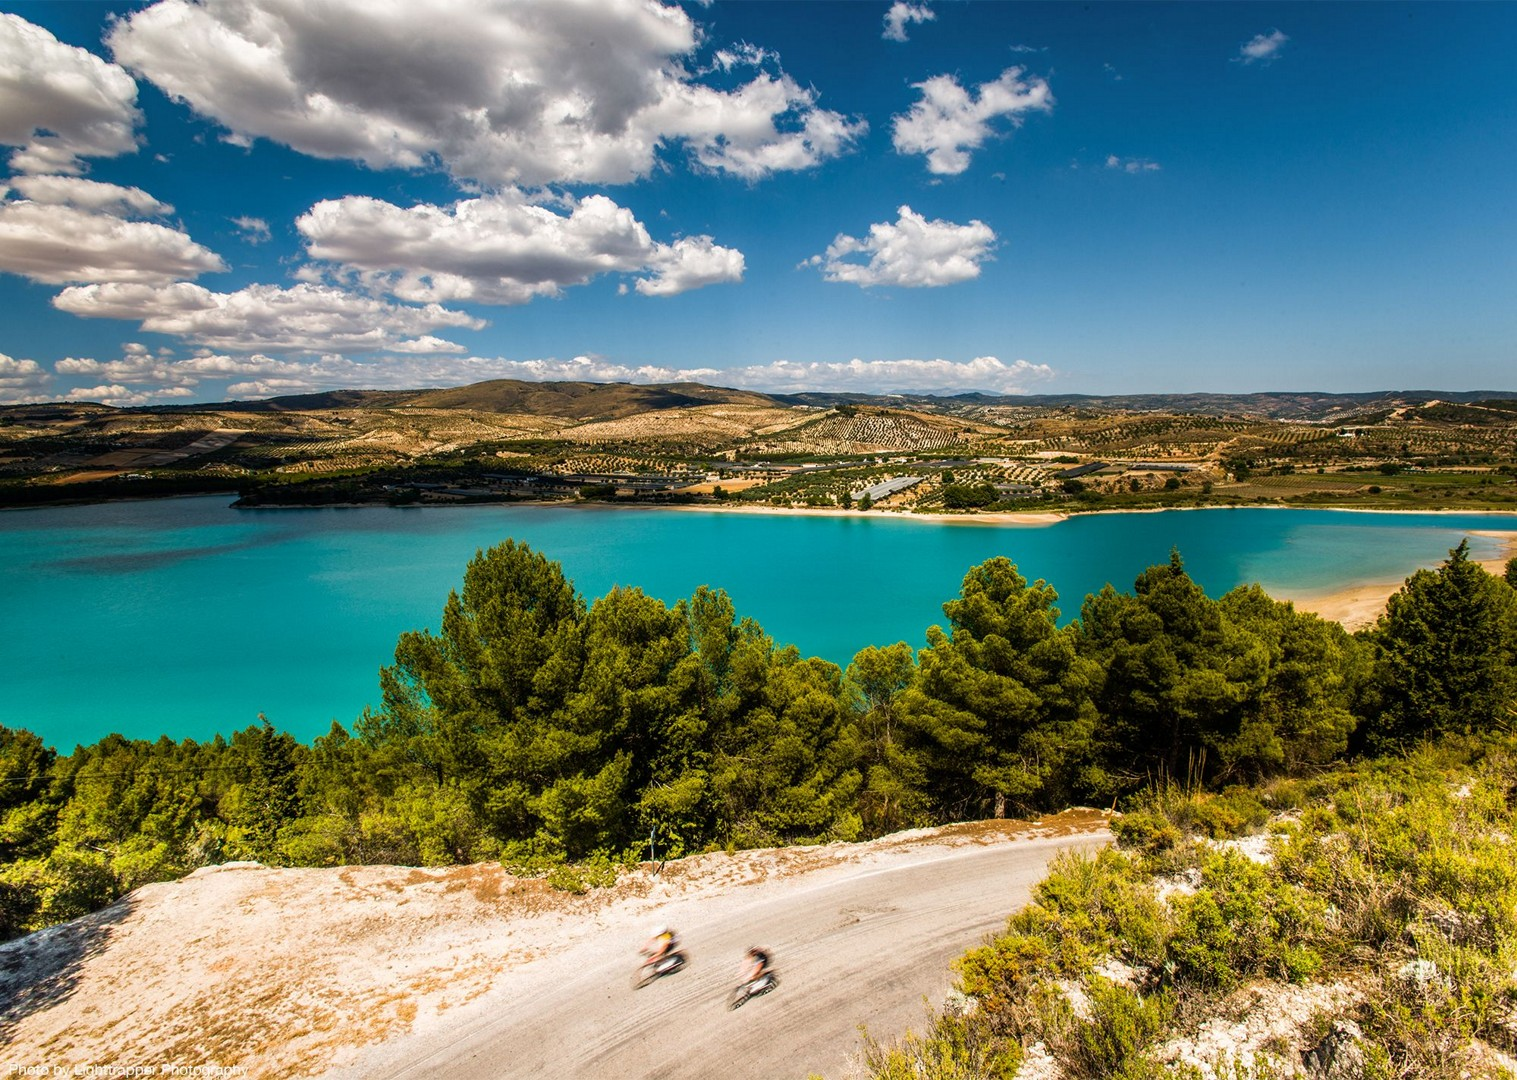 road-cycling-holiday-southern-spain-saddle-skedaddle.jpg - Southern Spain - Sierra Nevada and Granada - Guided Road Cycling Holiday - Road Cycling